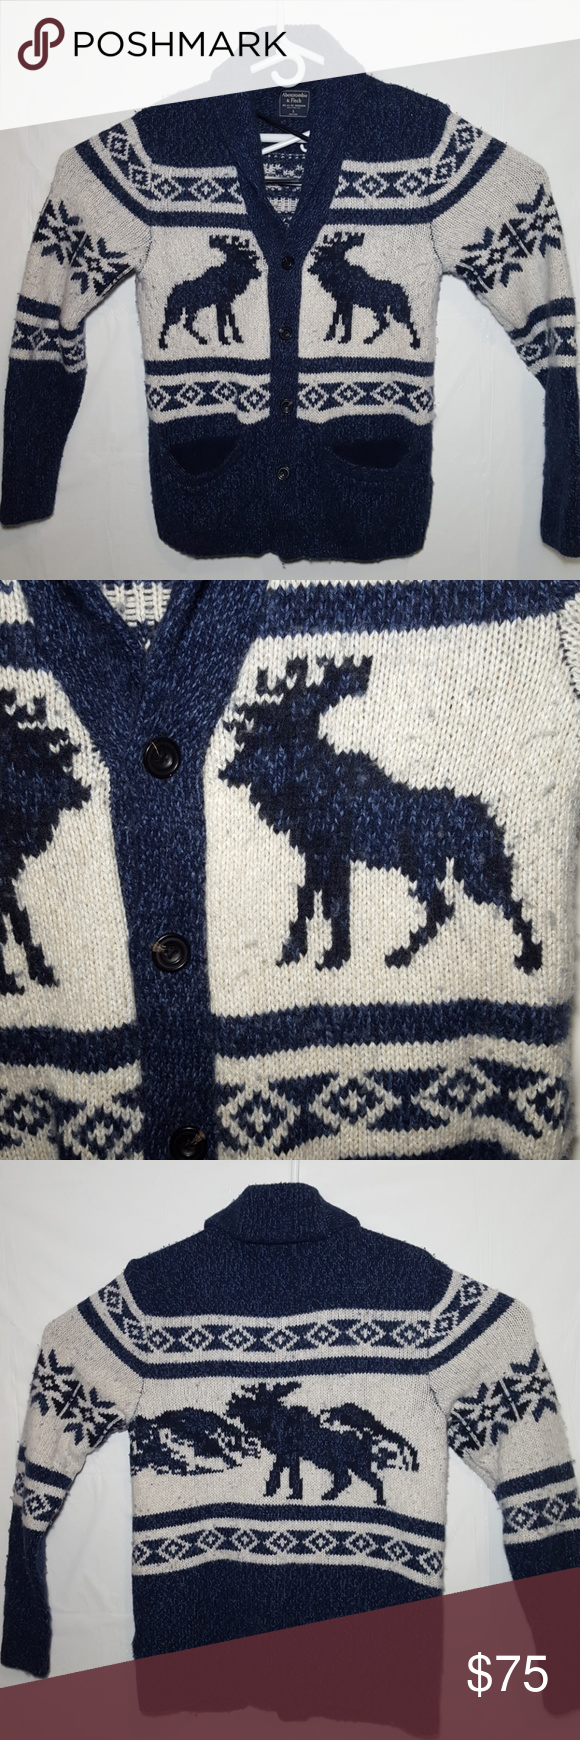 Abercrombie Fitch Christmas Cardigan Sweater VTG | Sweater